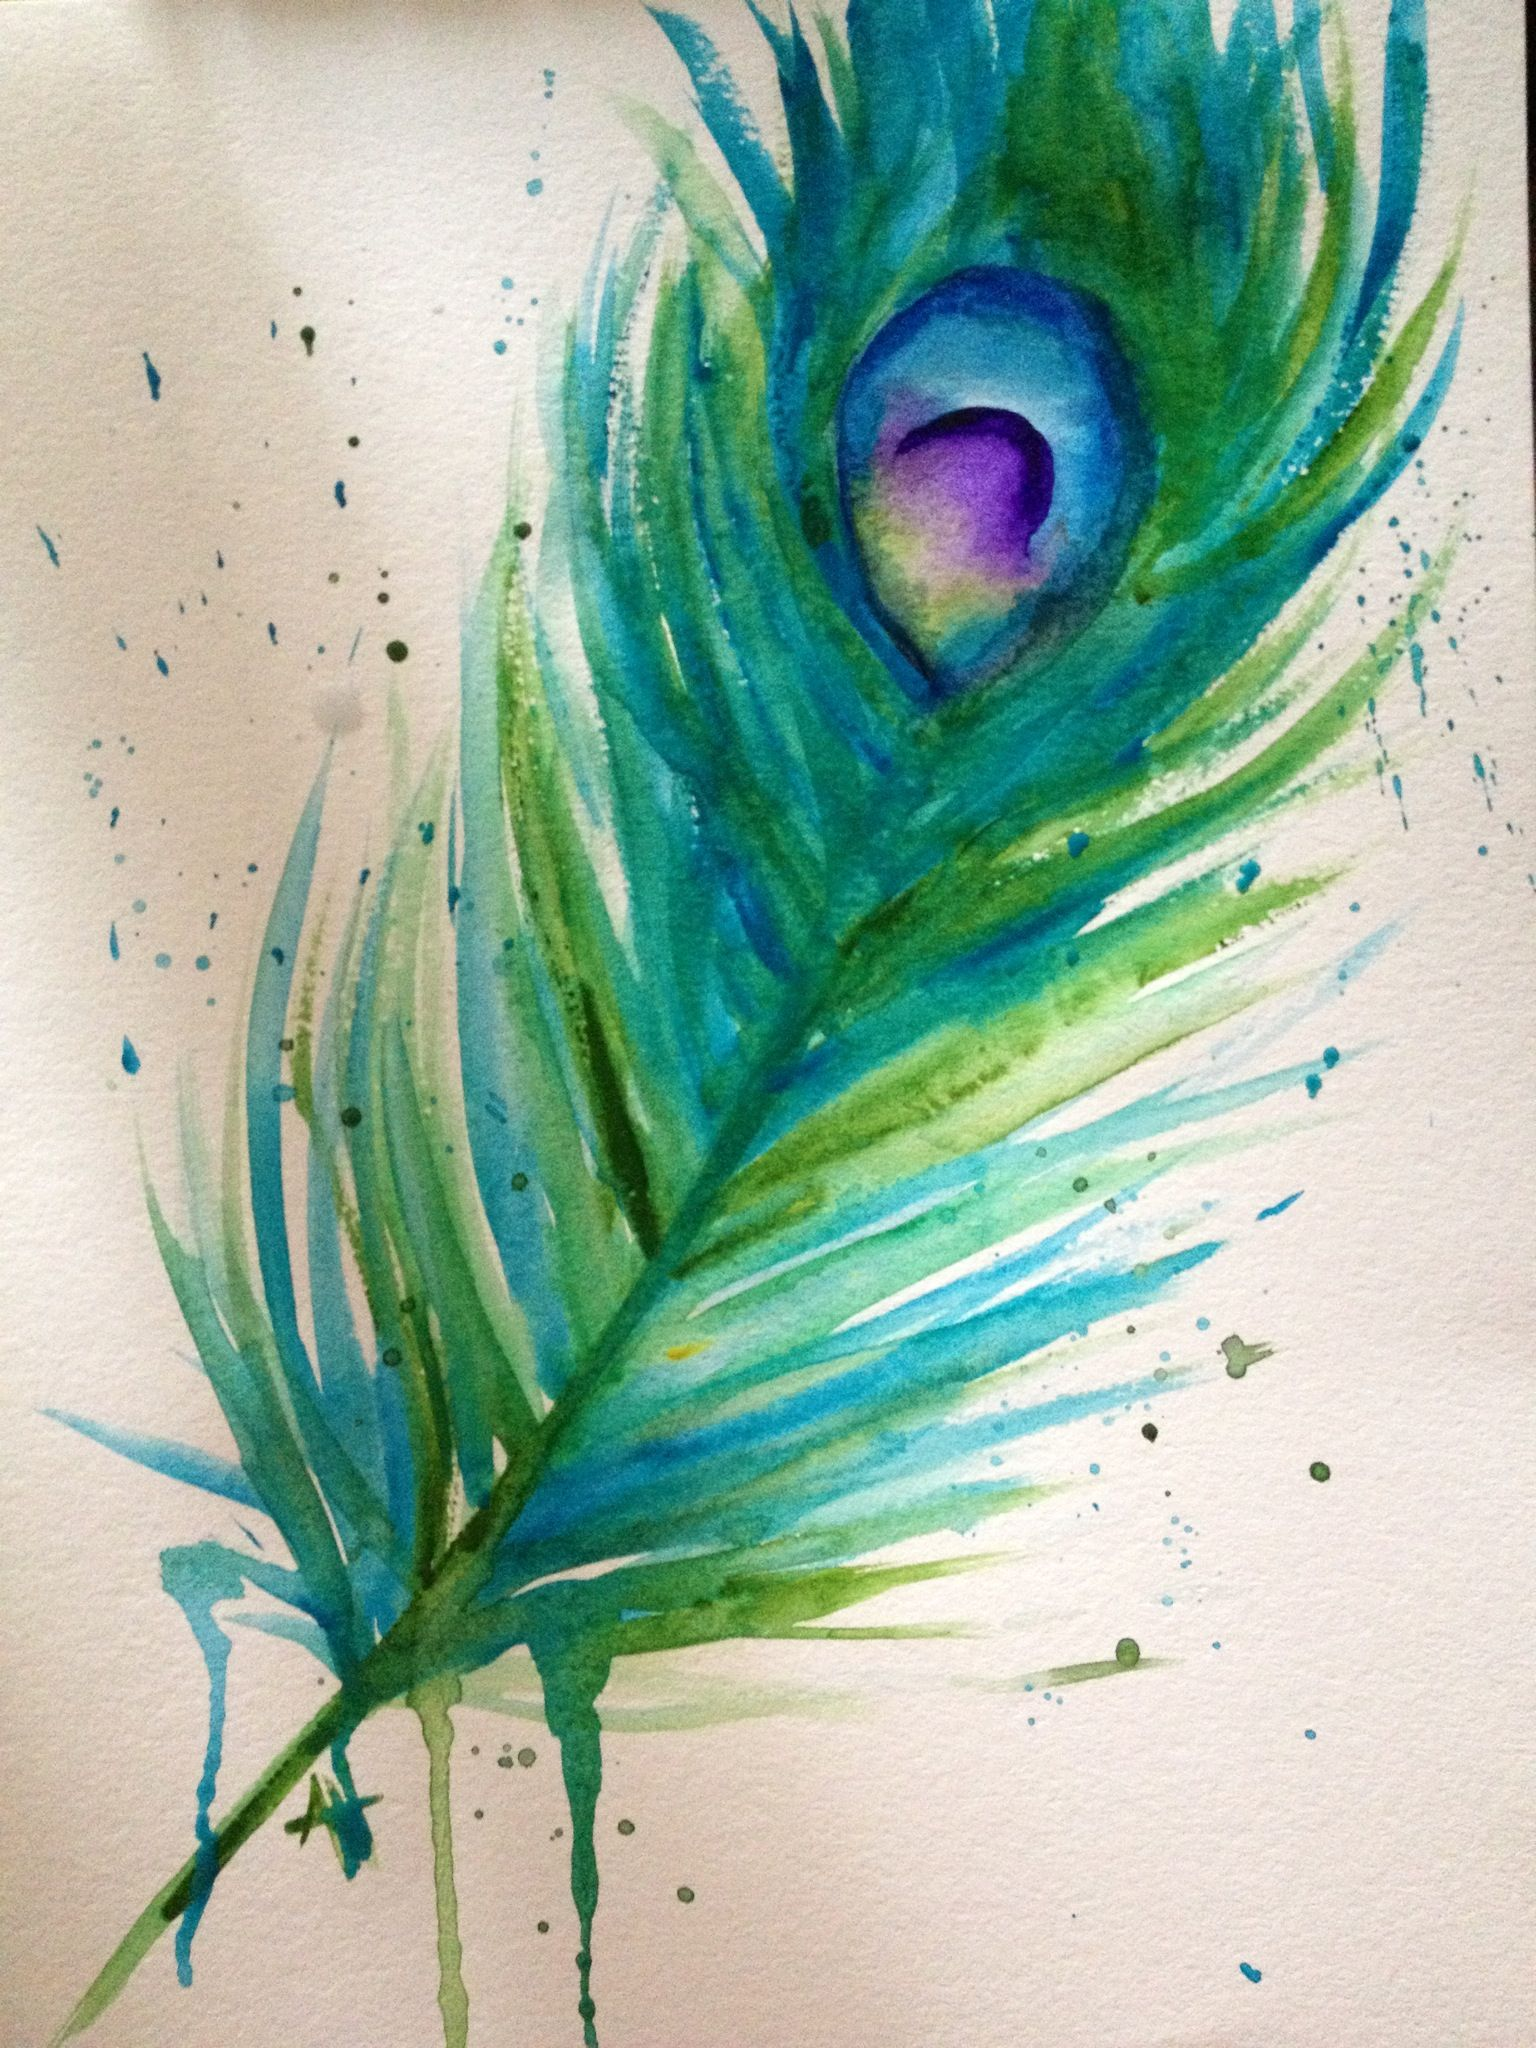 b32716ac3 Watercolor peacock feather art #peacockfeather #feather #peacock #watercolor